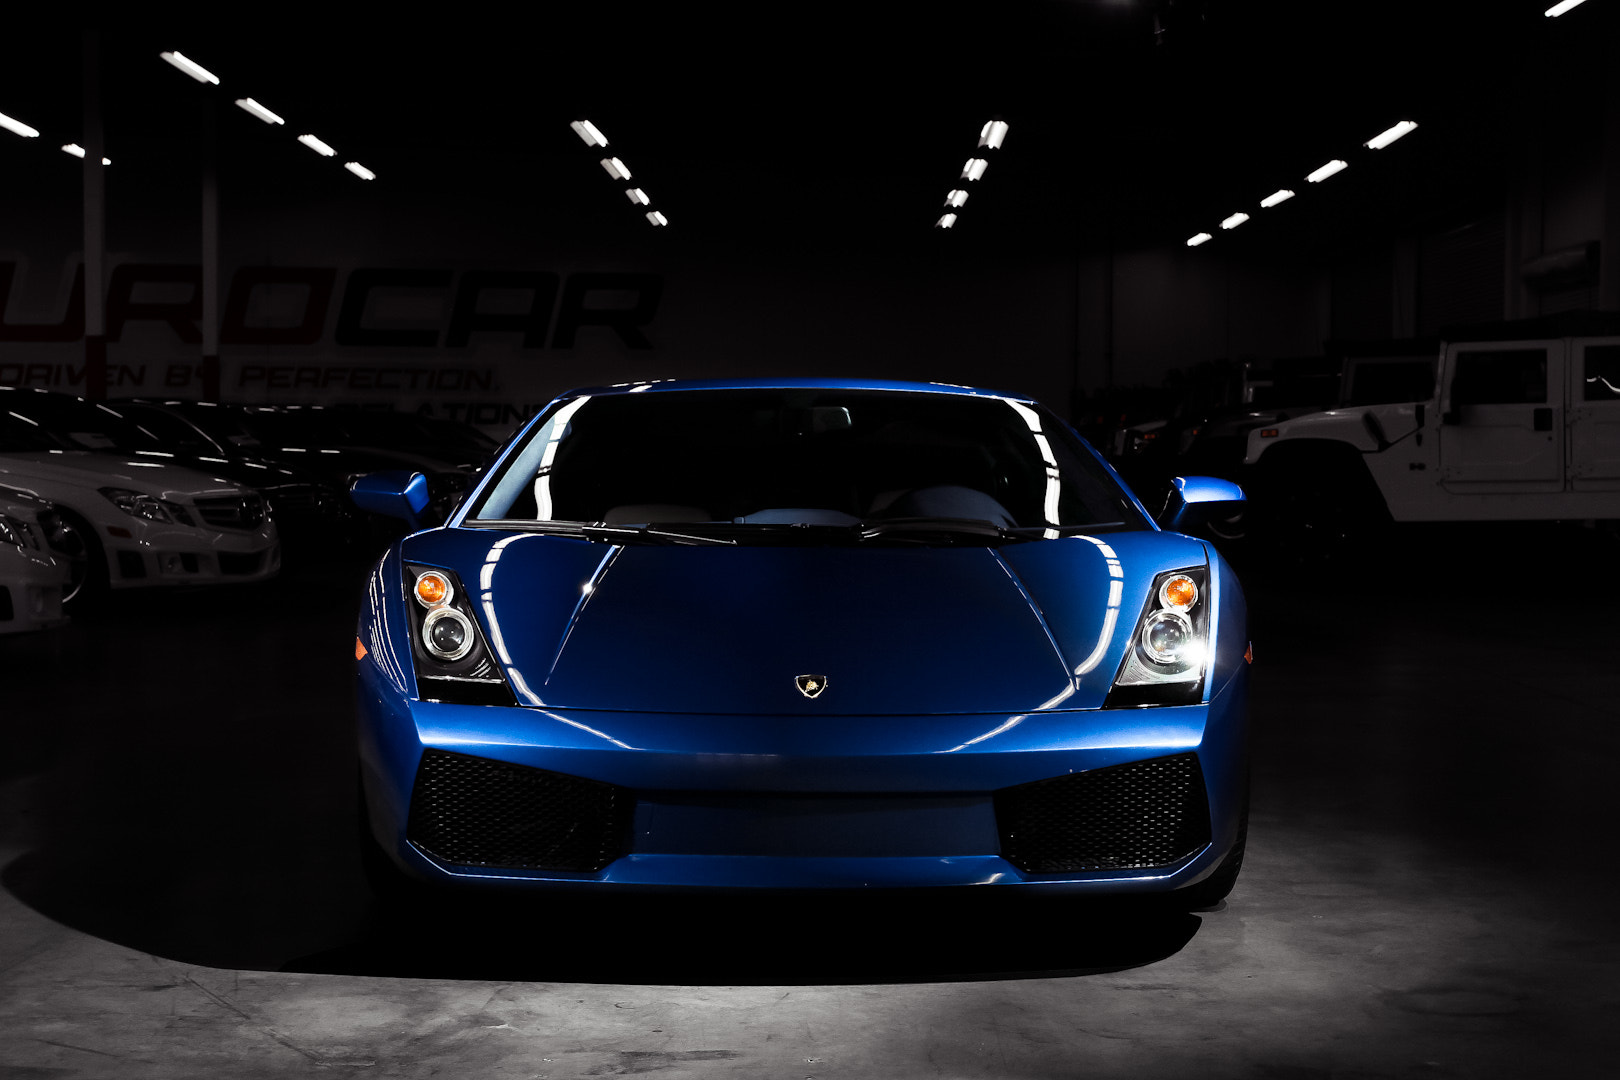 Photograph Blue Lamborghini Gallardo by Philip Tieu on 500px